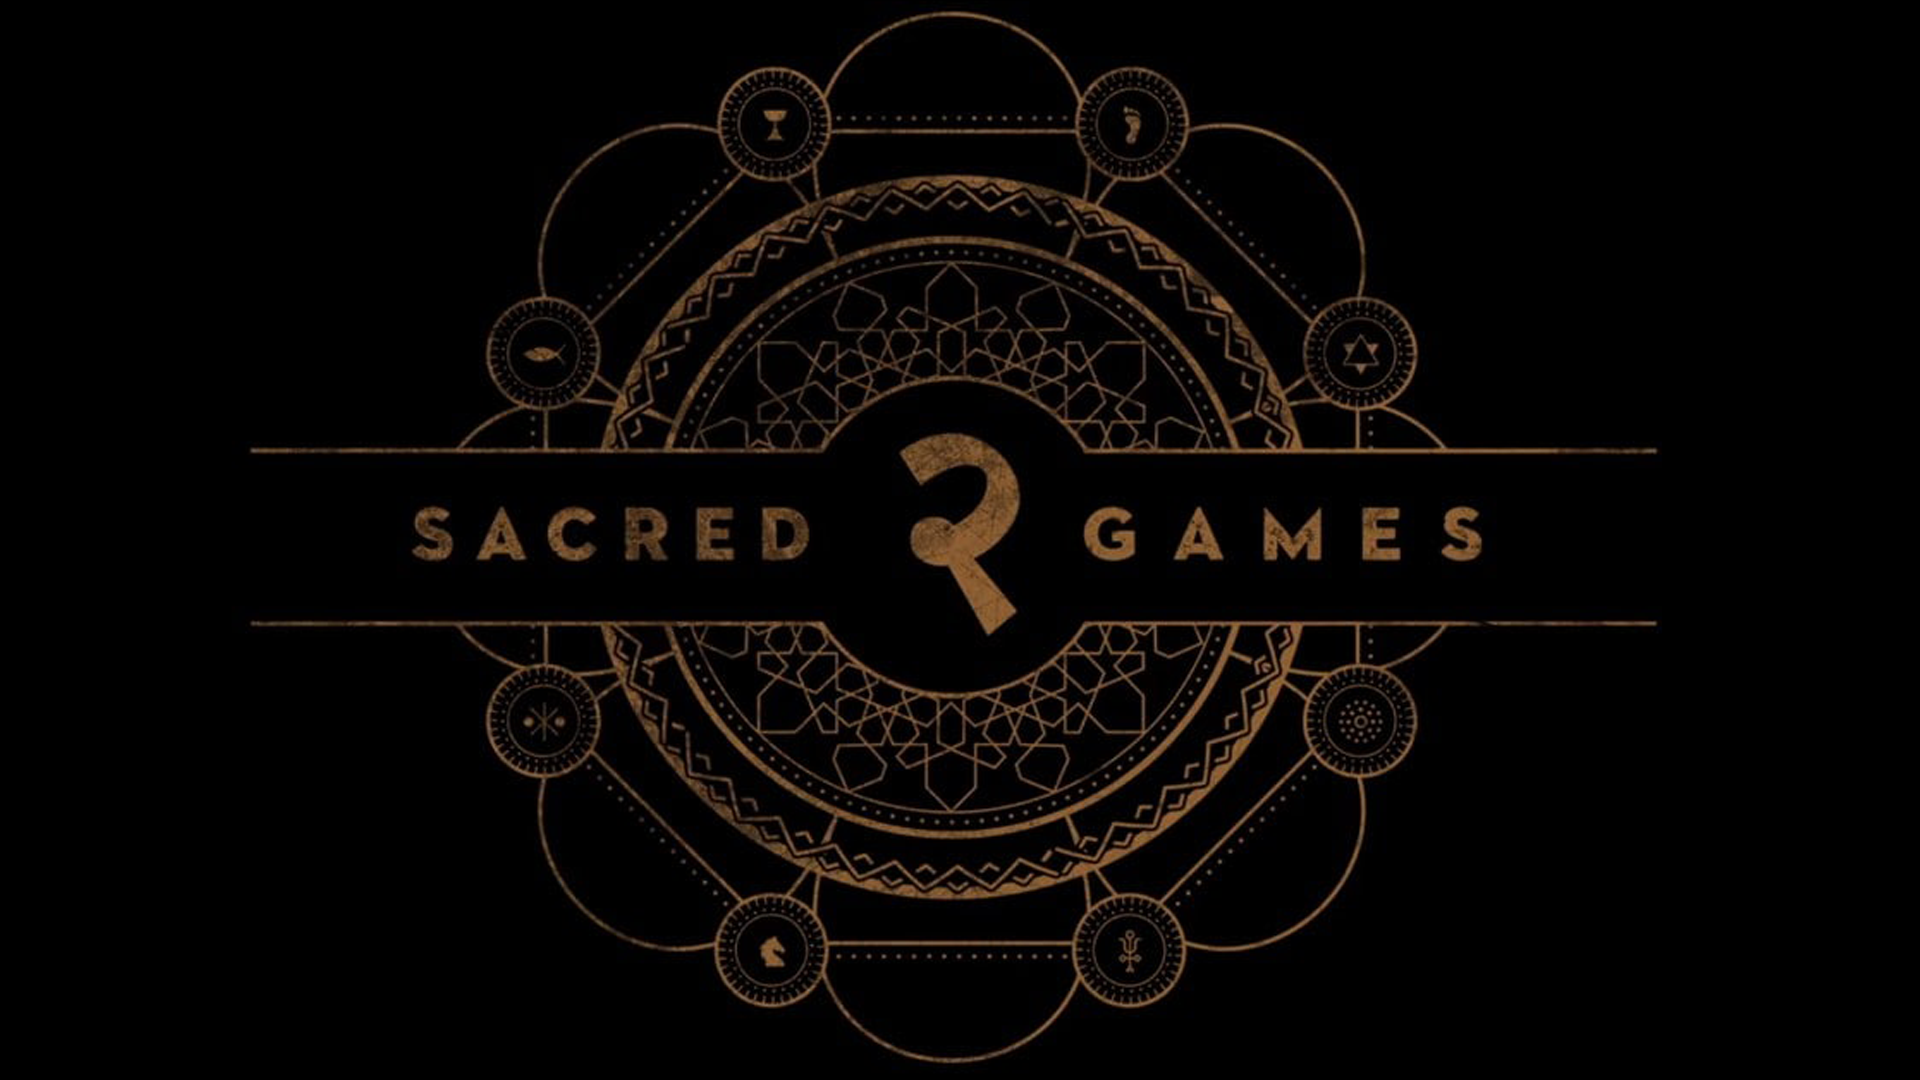 Sacred Games 2 Hashtag Analysis on Instagram, Facebook